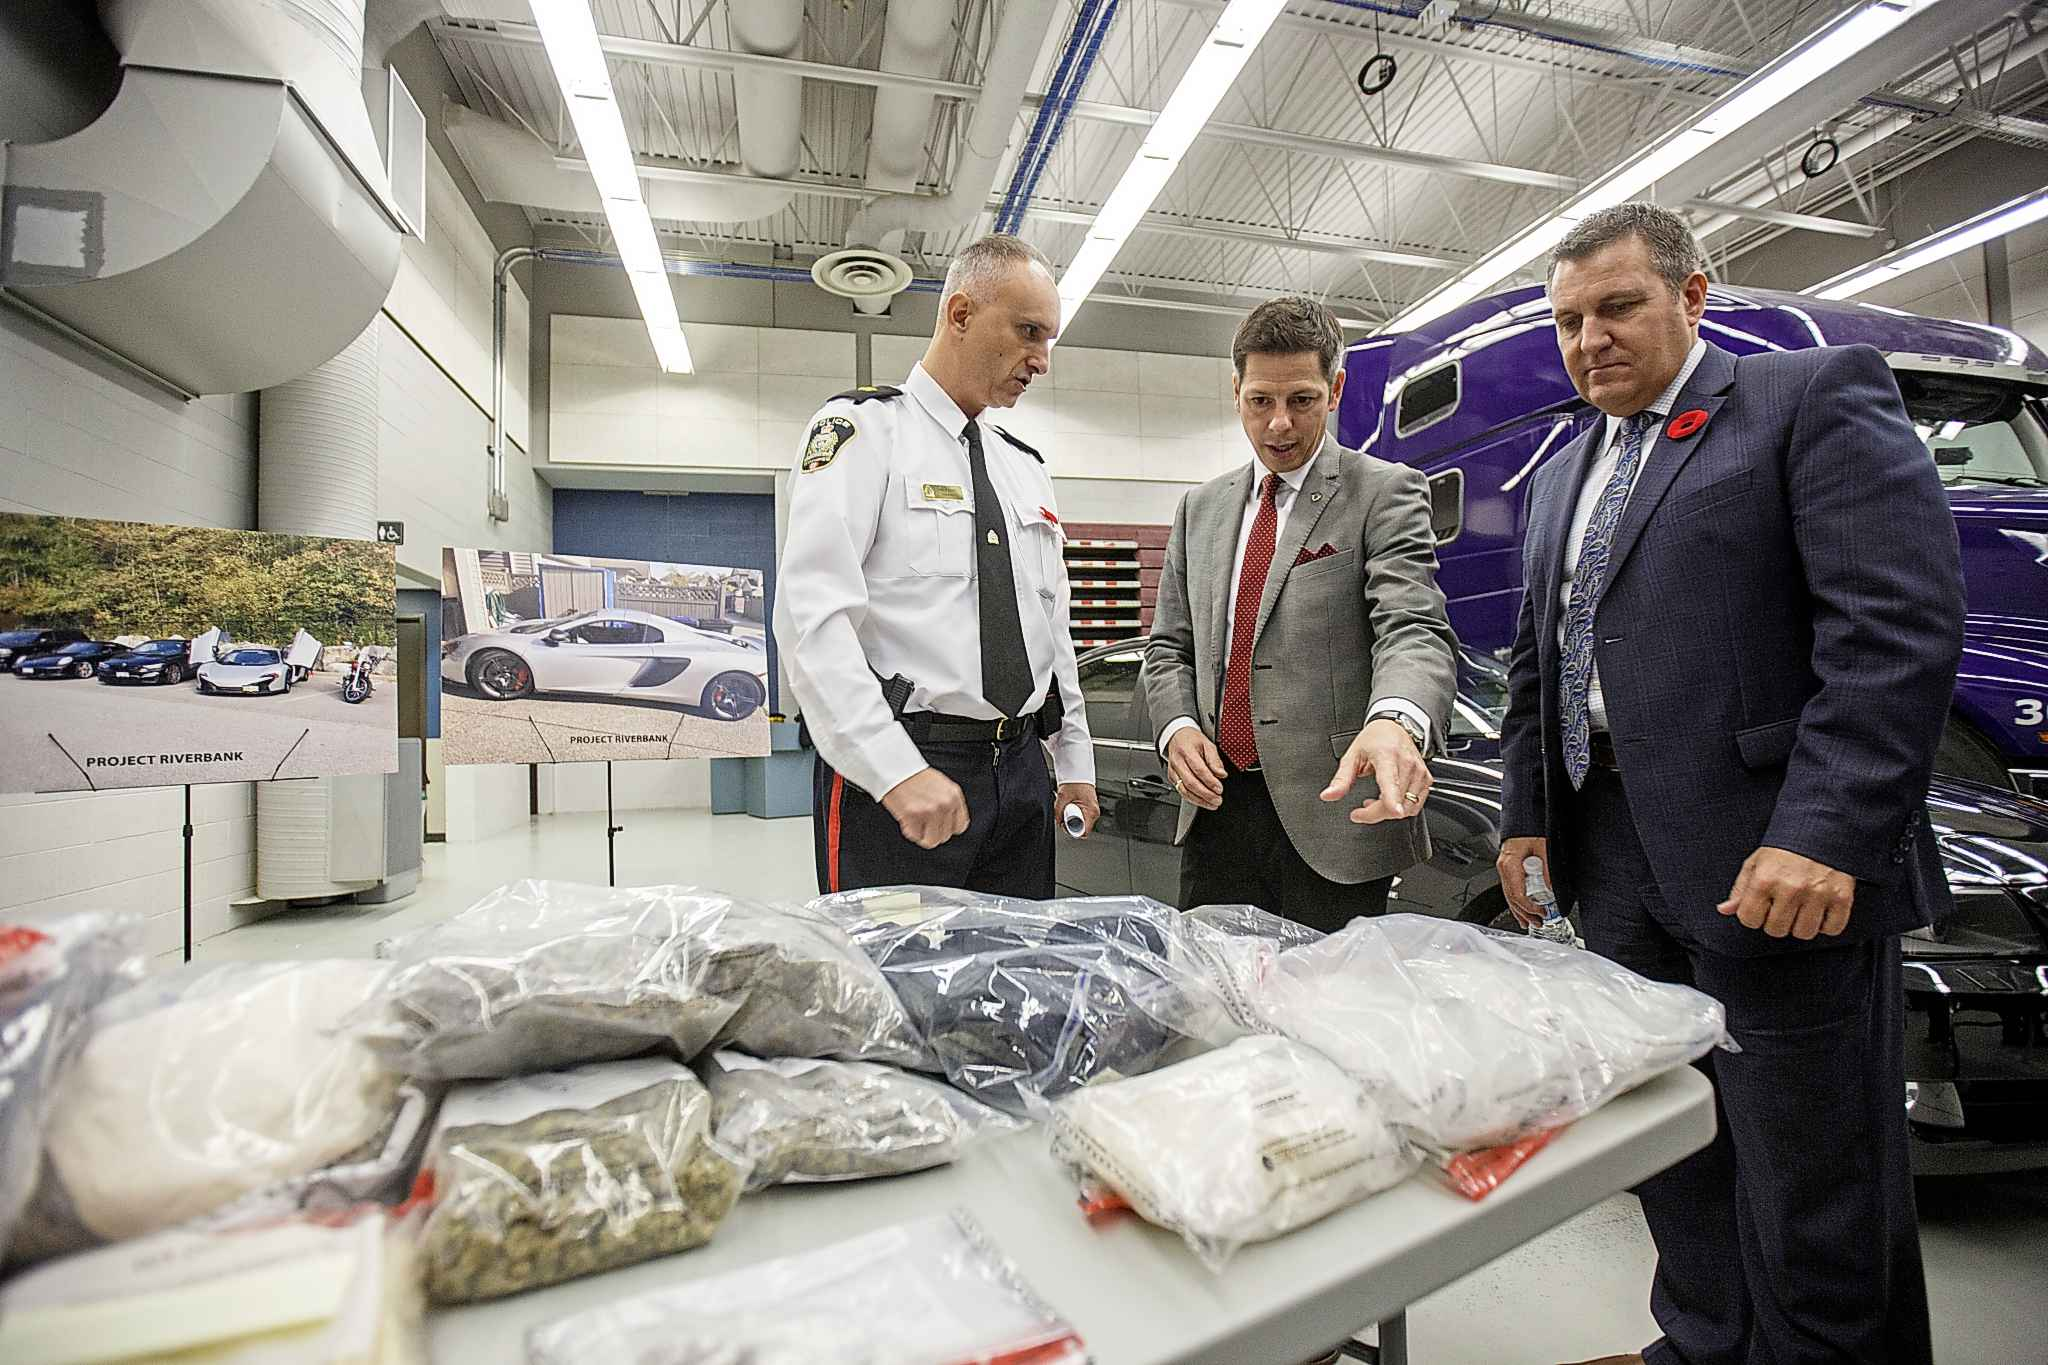 Winnipeg police Inspector Max Waddell shows Winnipeg Mayor Brian Bowman and Cliff Cullen Minister of Justice and Attorney General some of the seized items Thursday.